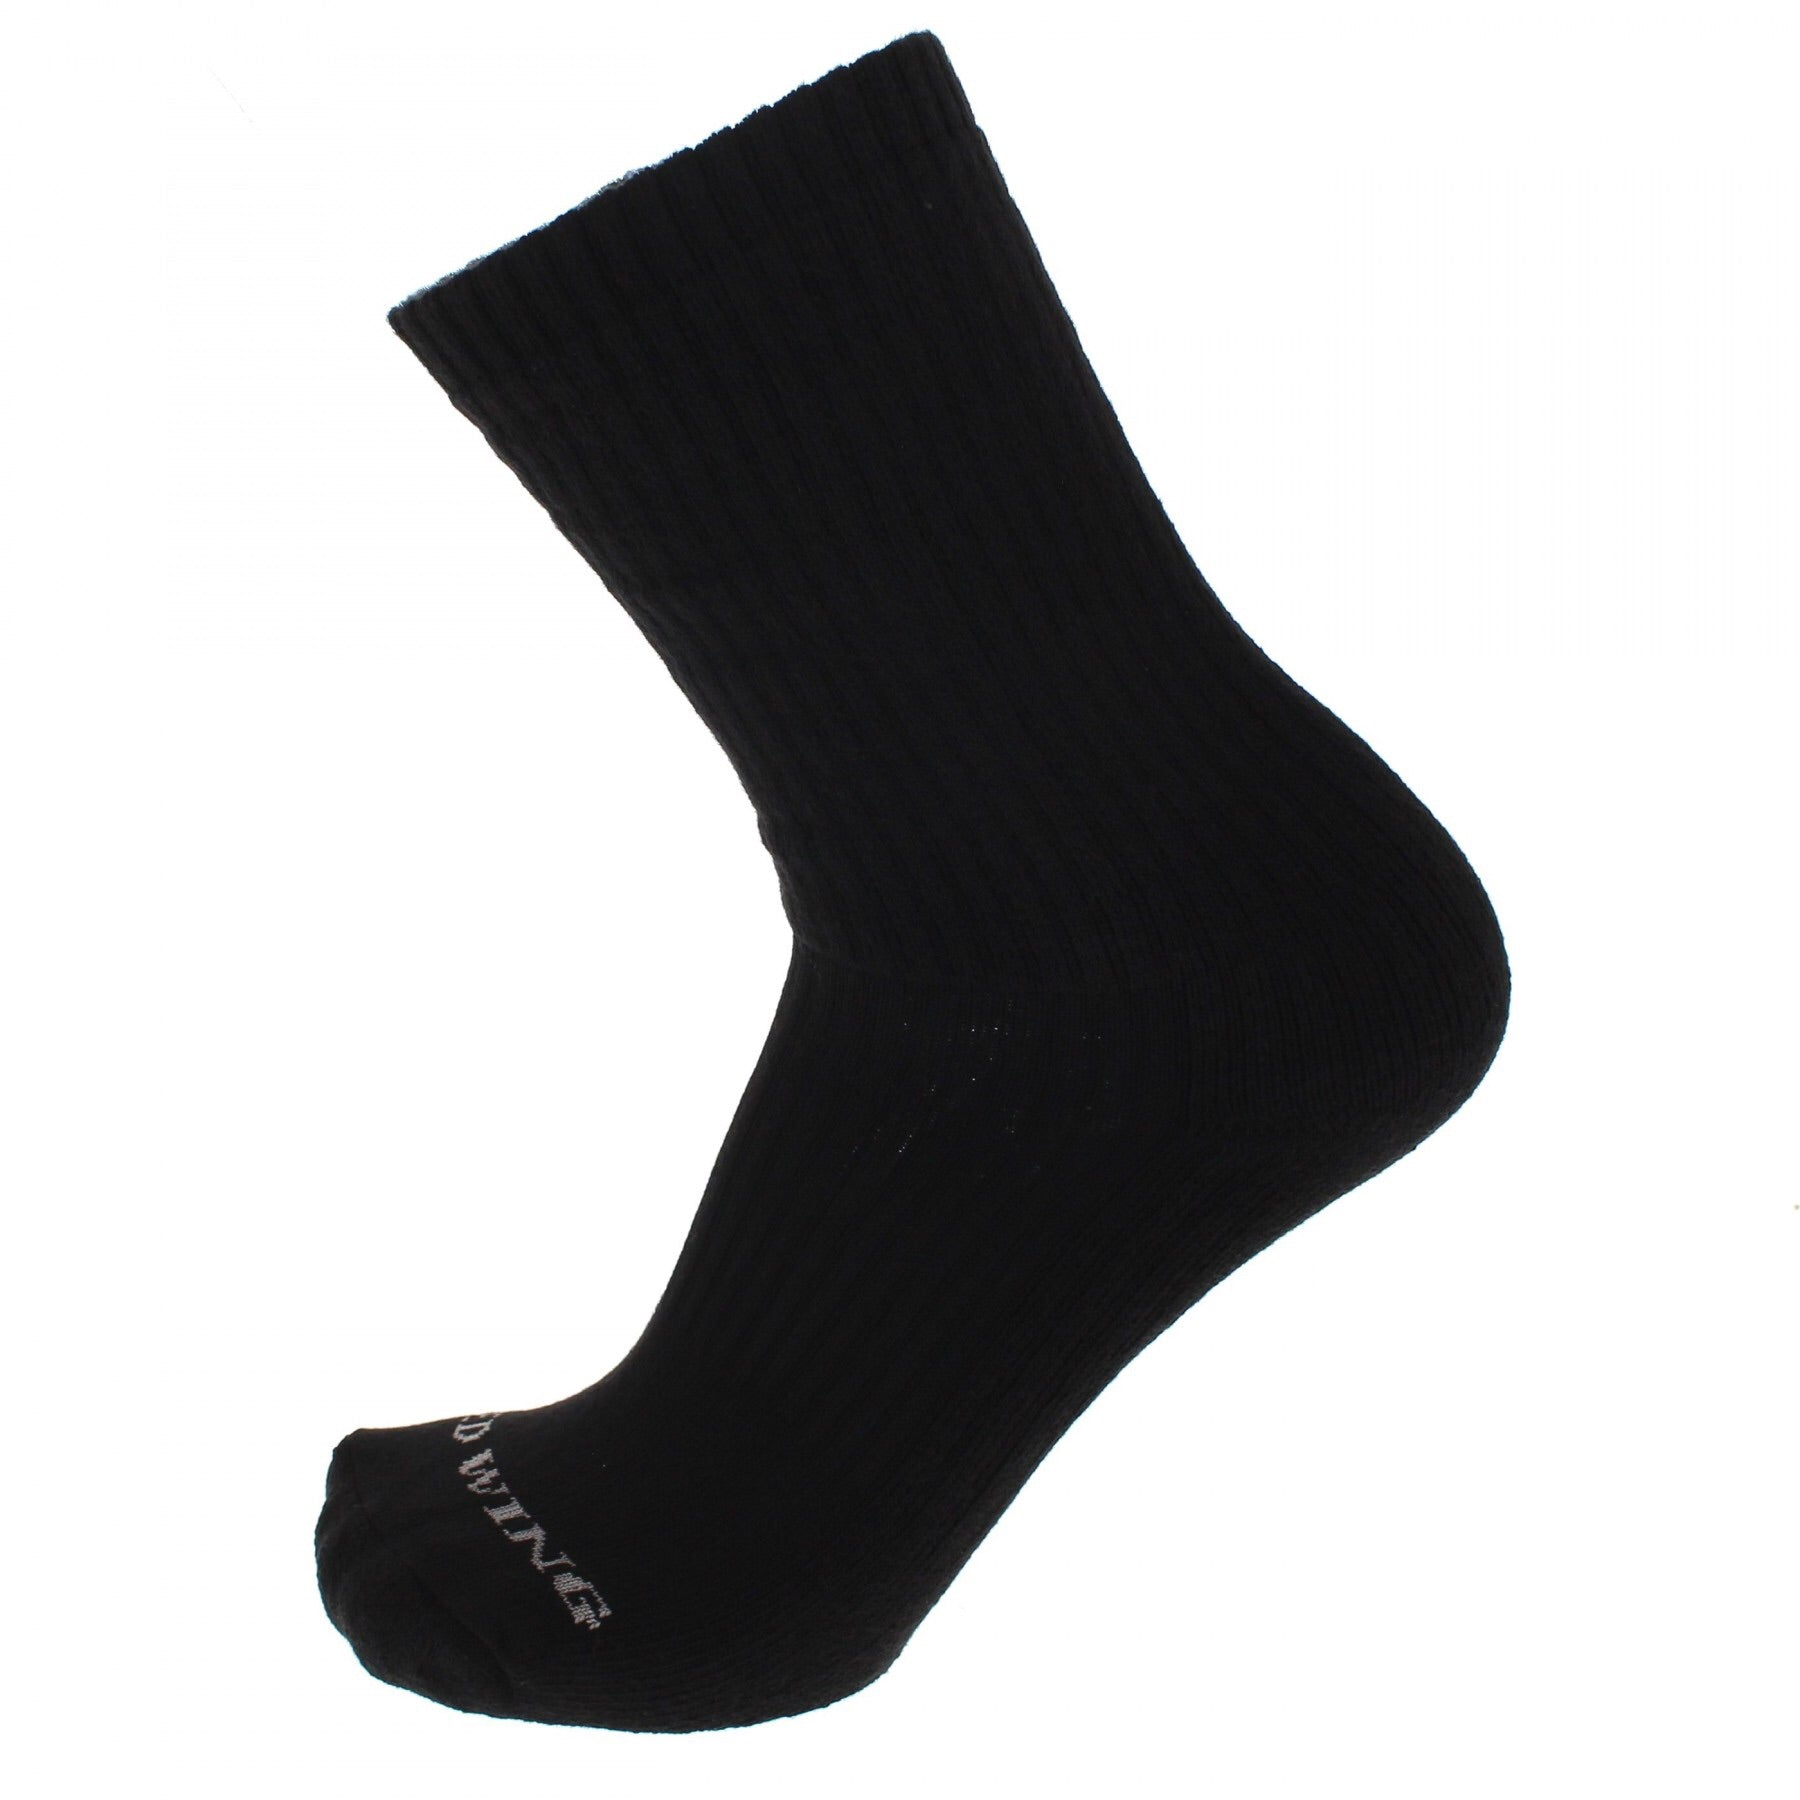 Red Wing - Socks, Cotton Cushion (black)